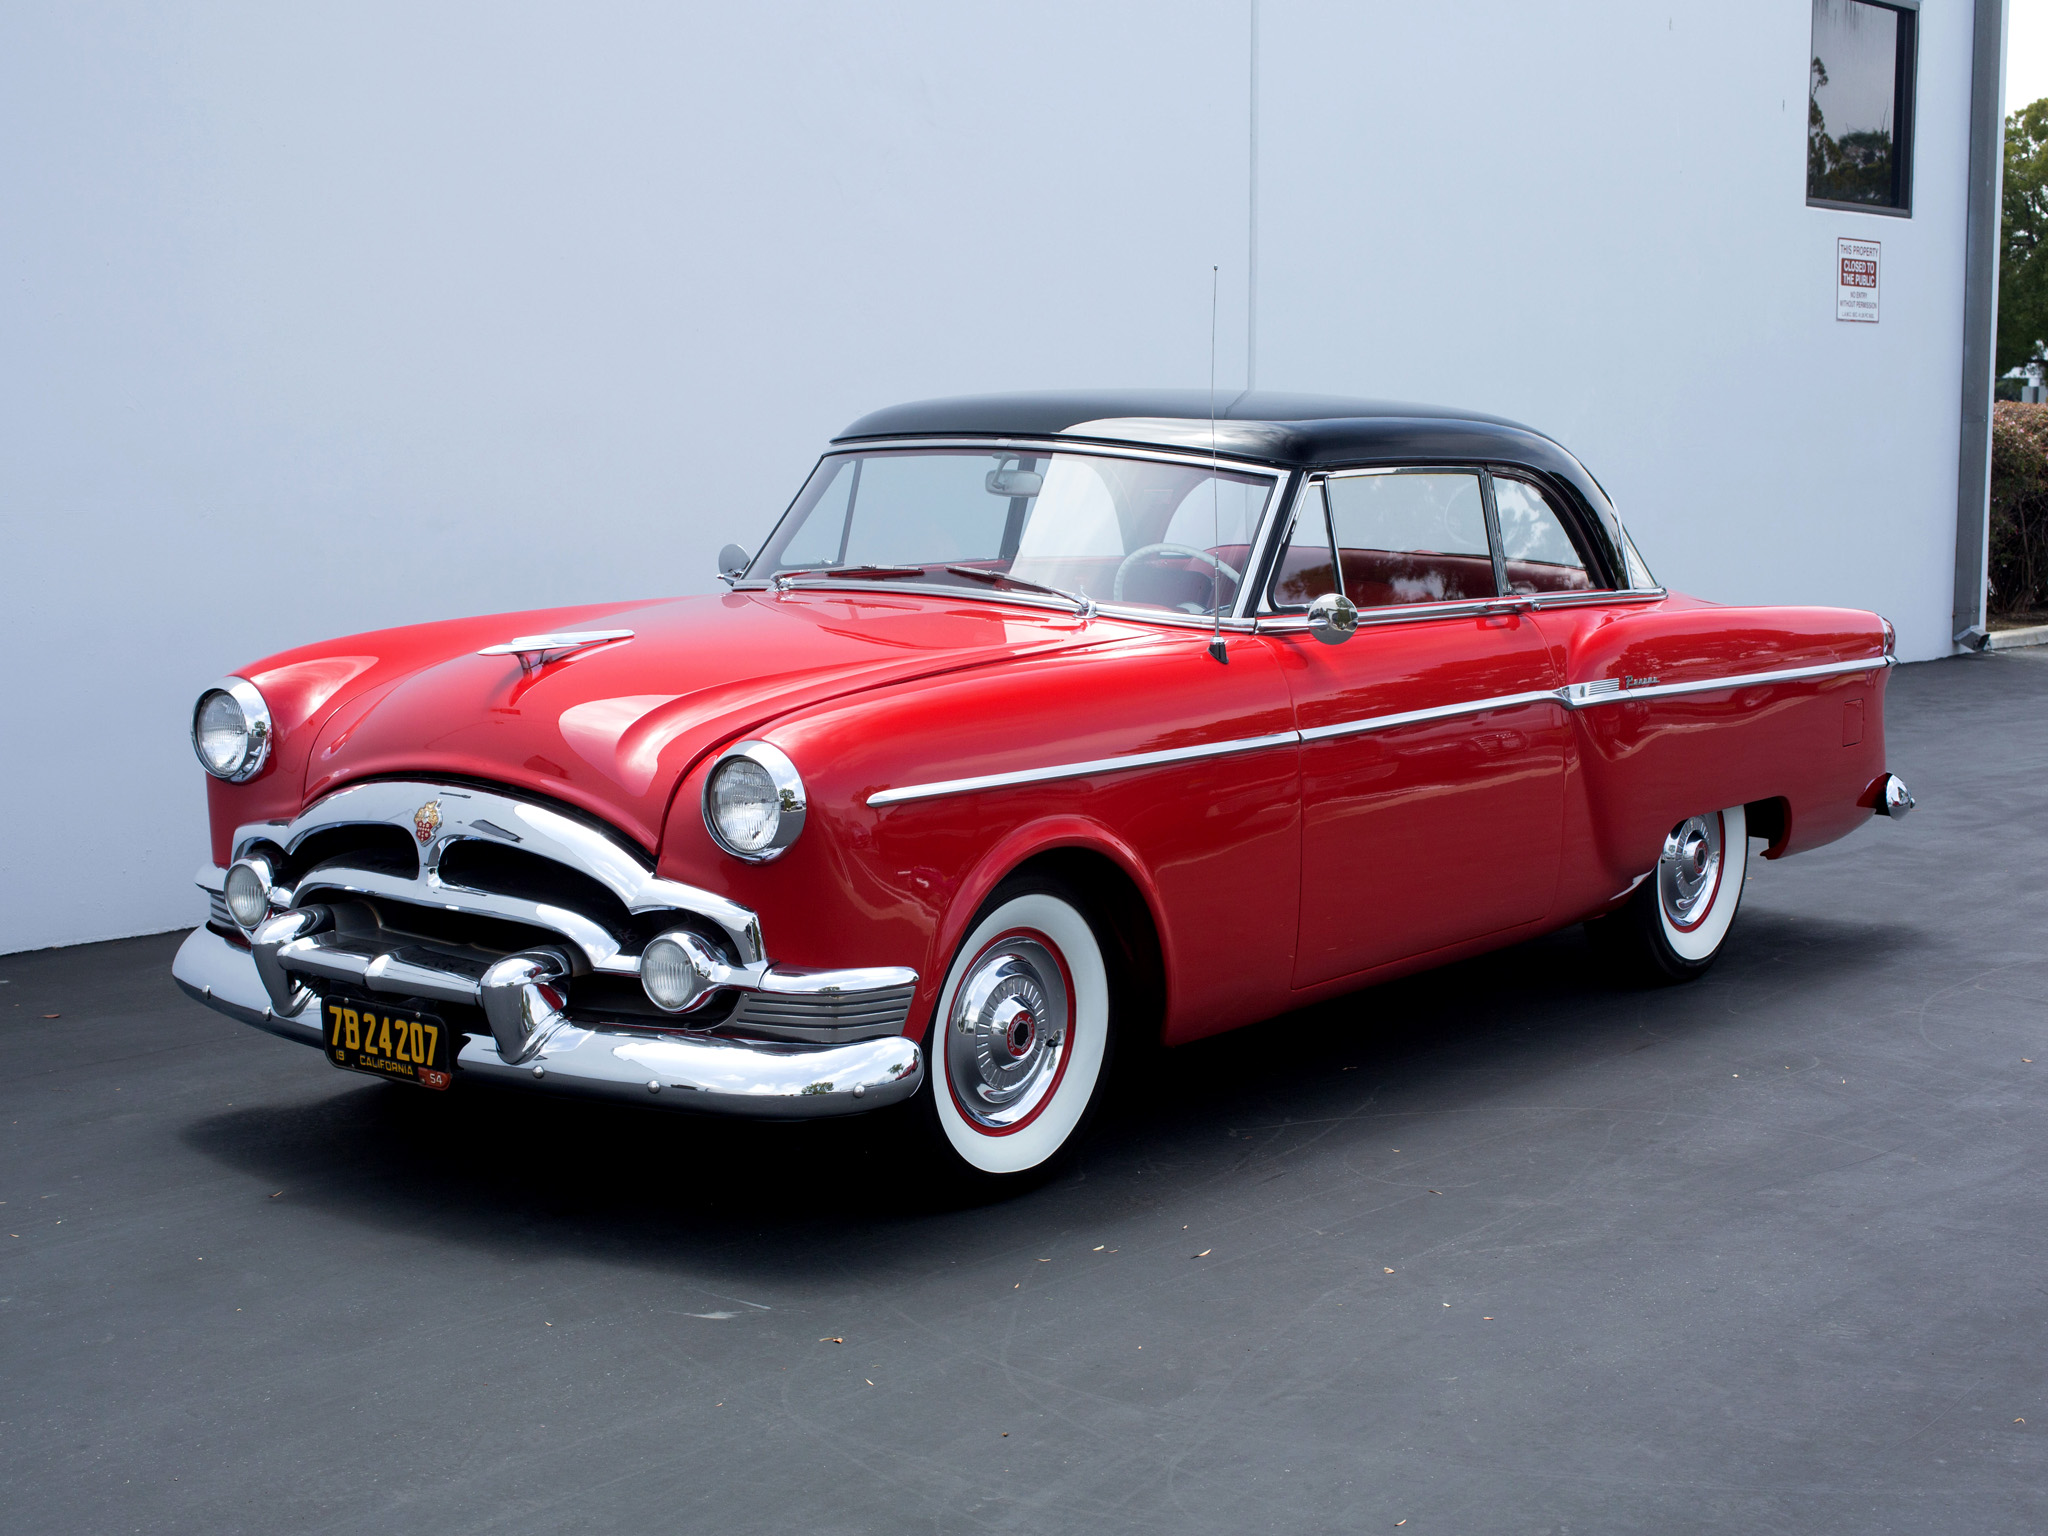 1954 Packard Super Clipper Panama Hardtop Coupe 5411 5467